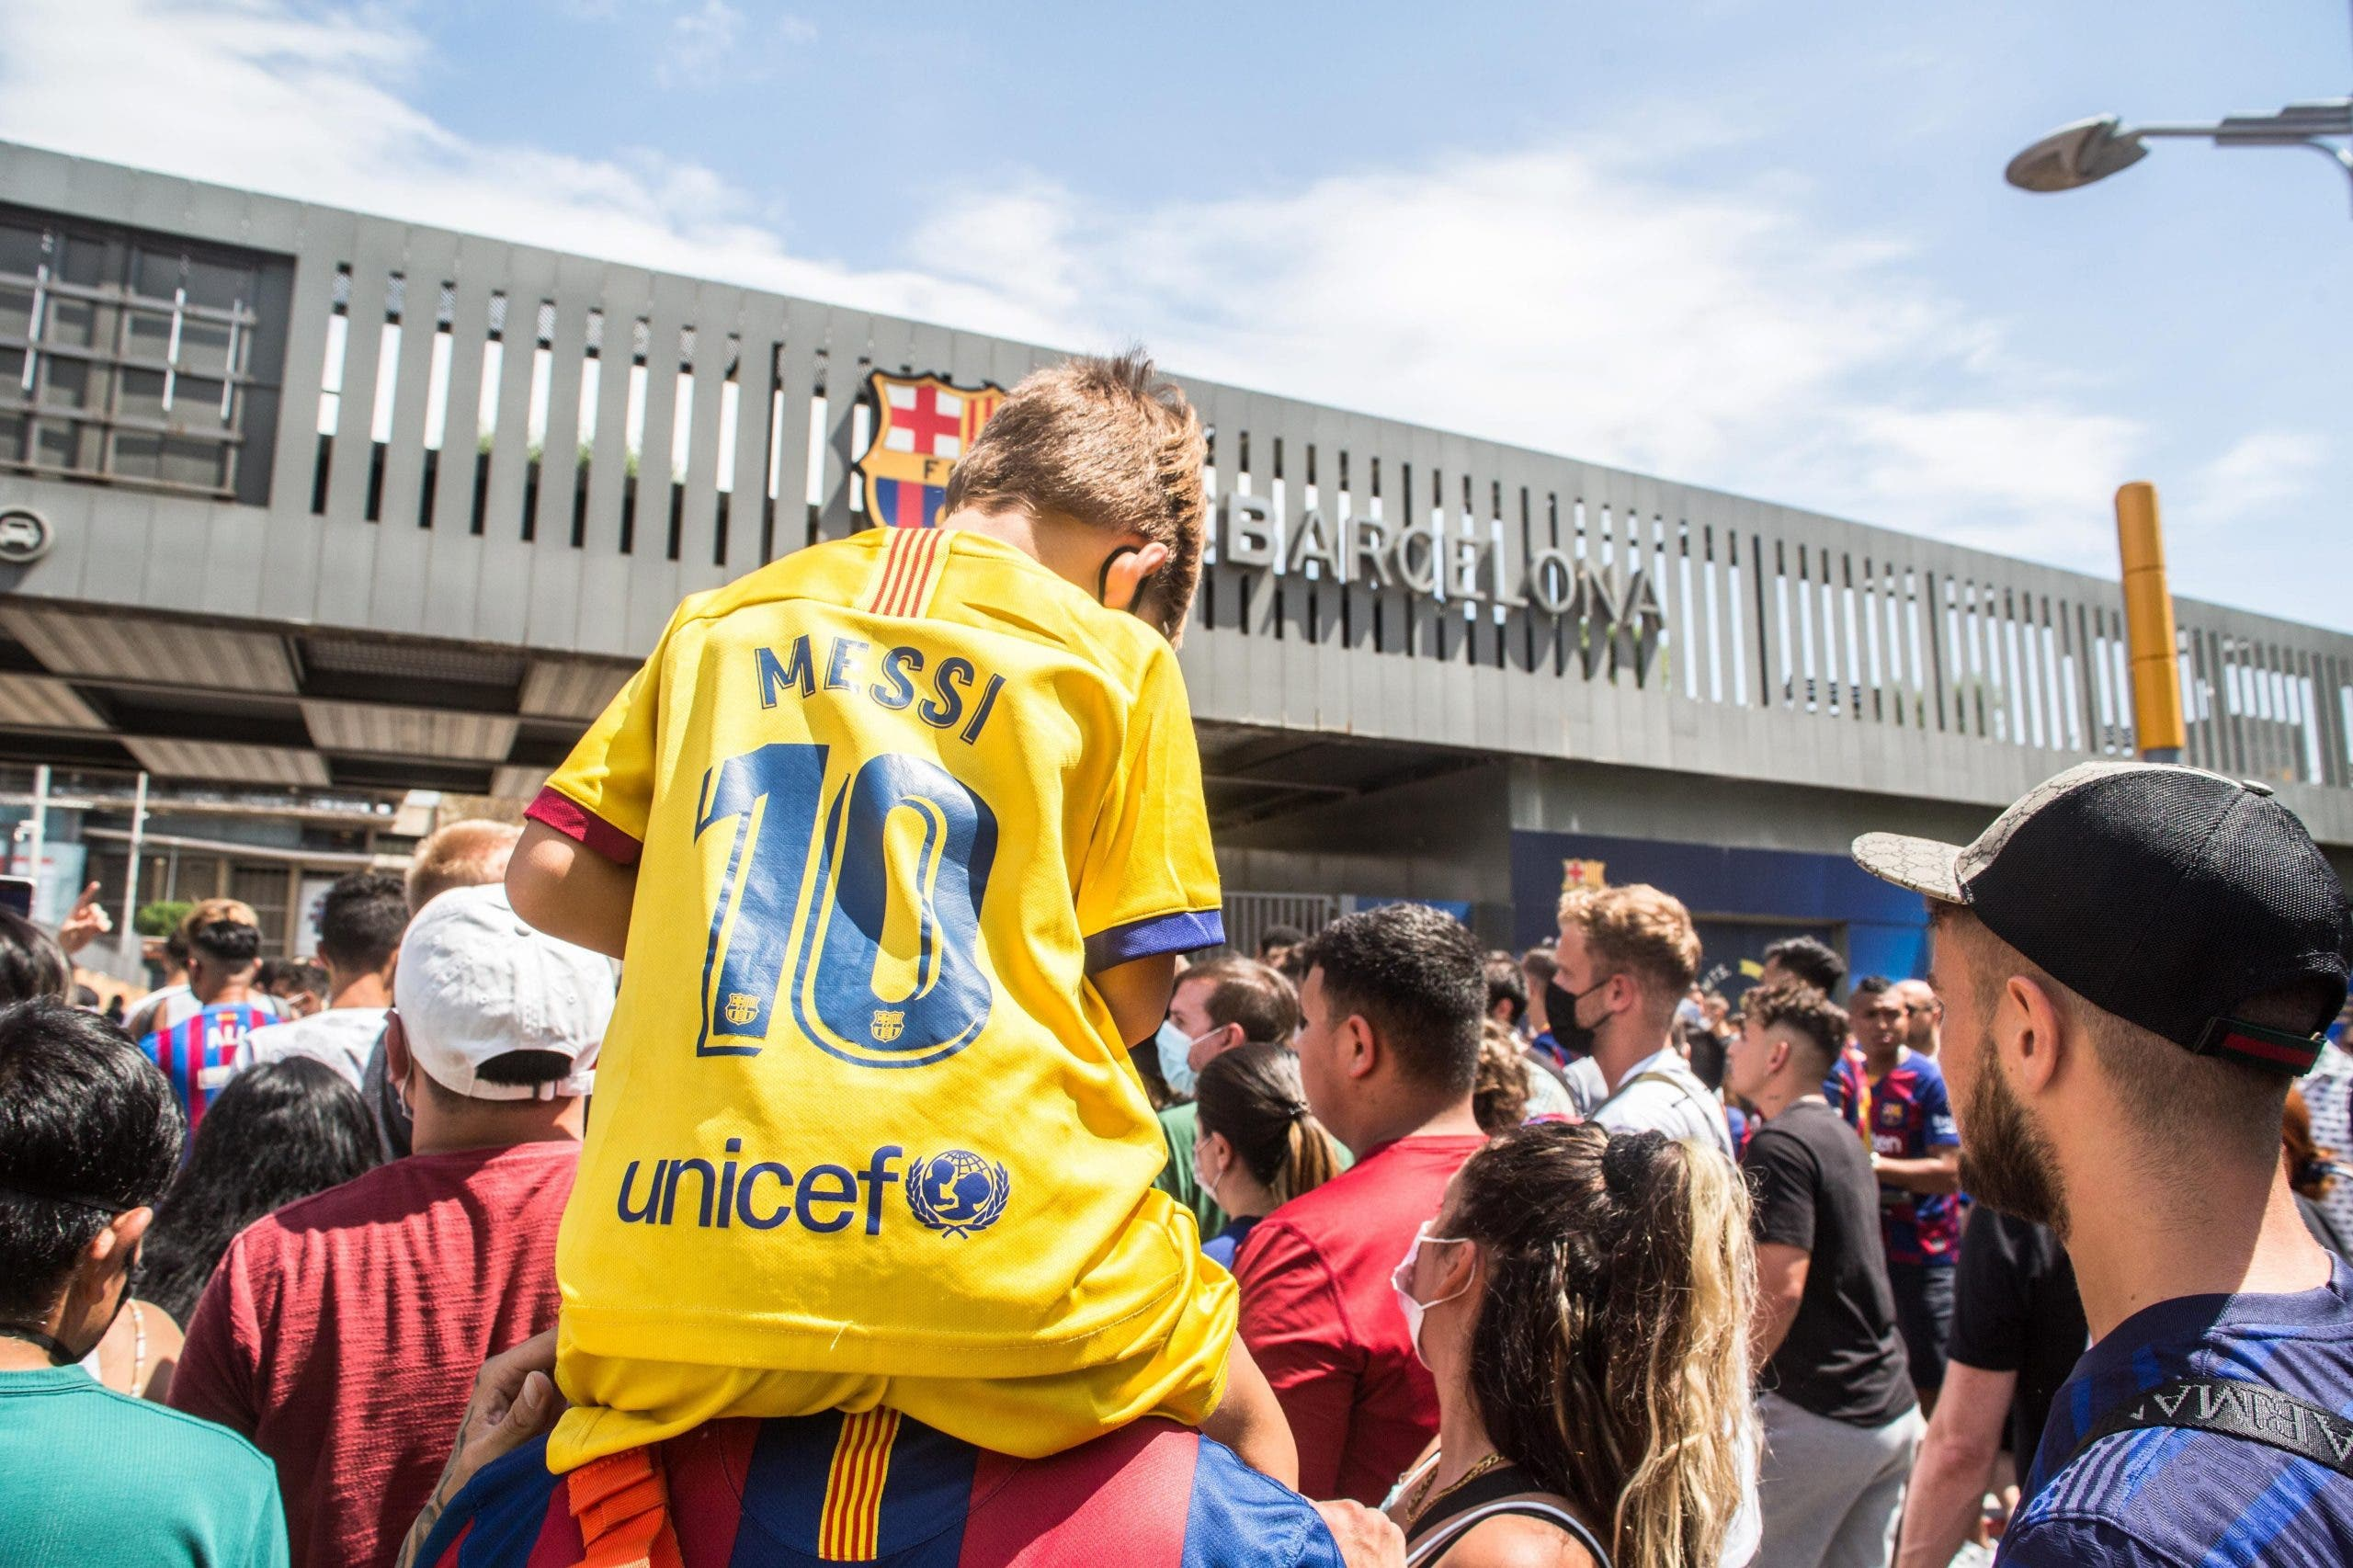 Fans On Messi's Farewell In Barcelona, Spain 08 Aug 2021